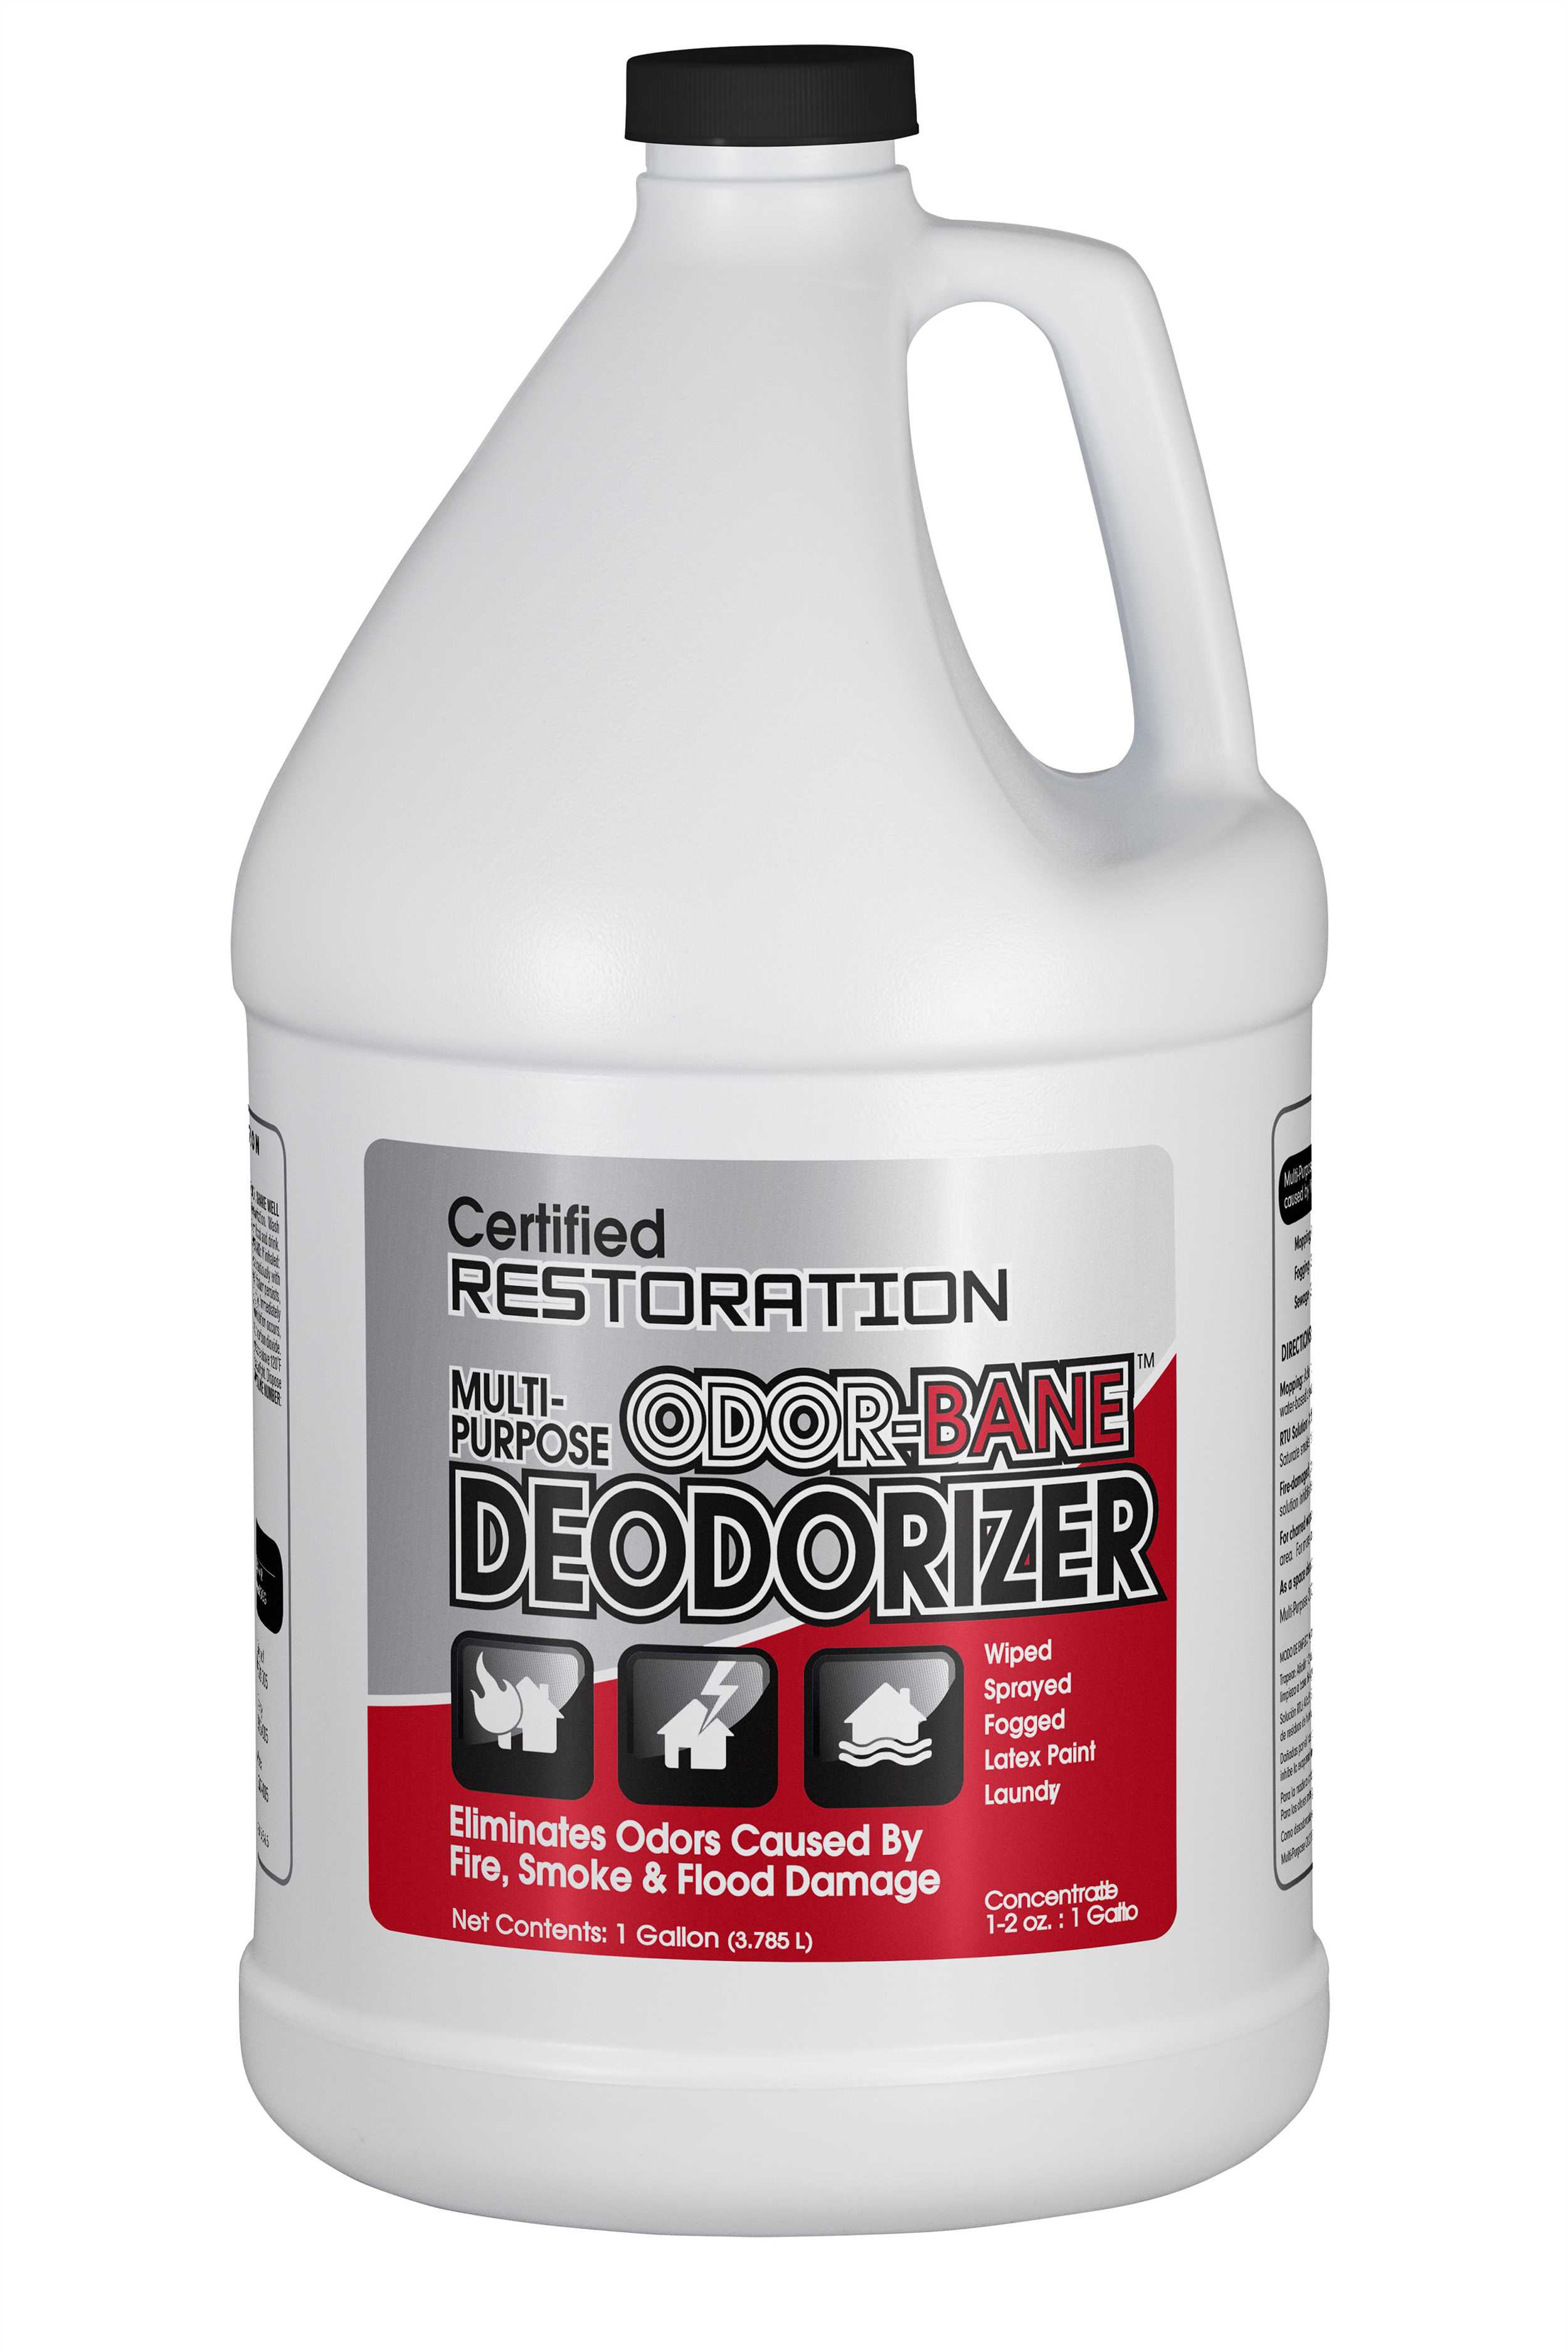 Multi-Purpose Odor-Bane Deodorizer